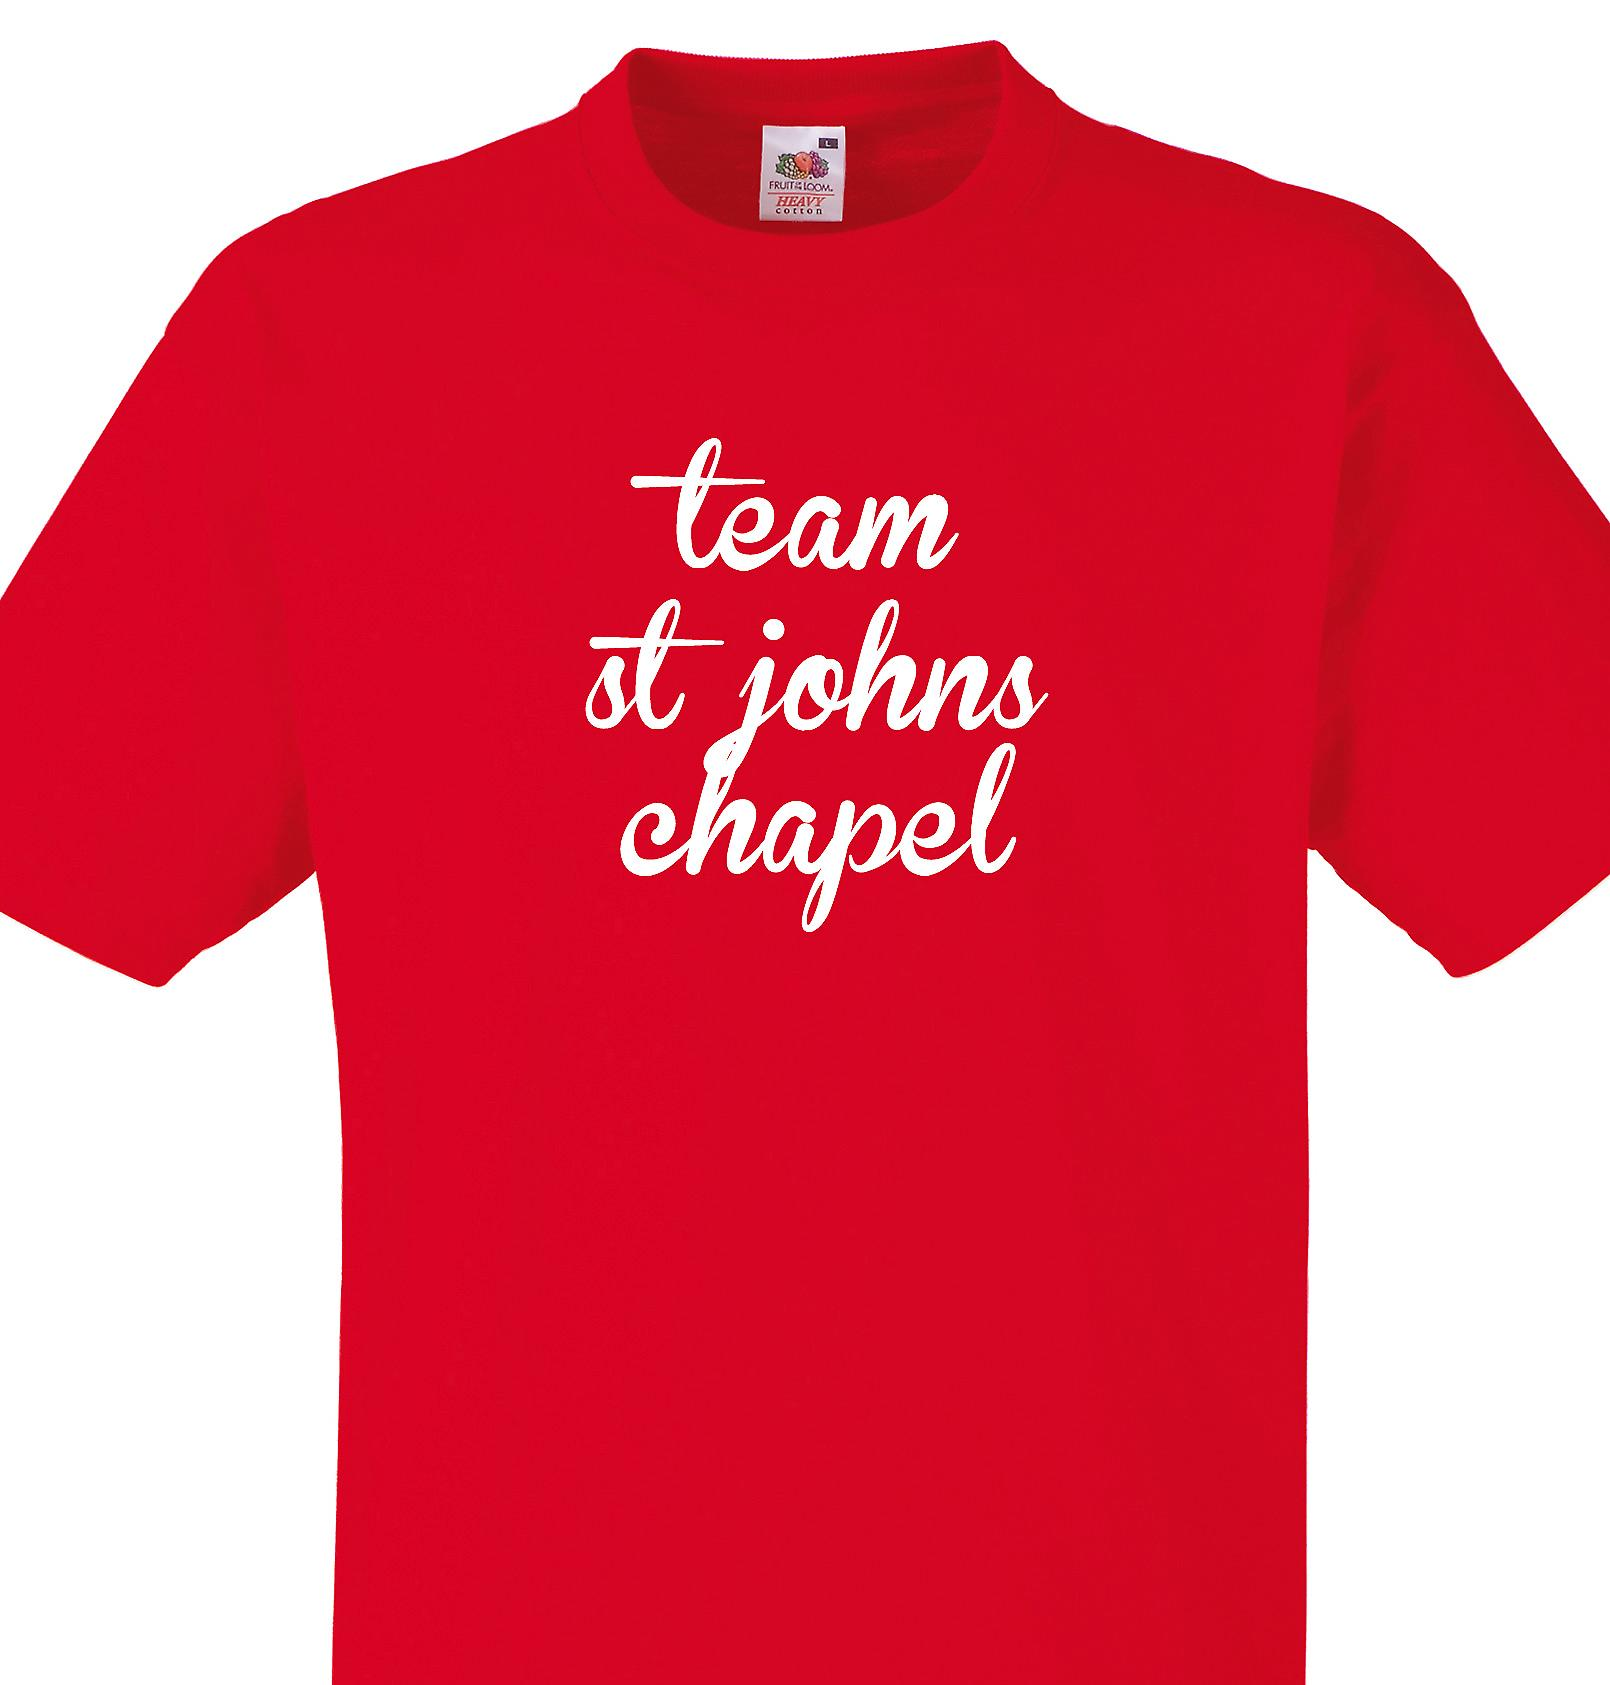 Team St johns chapel Red T shirt